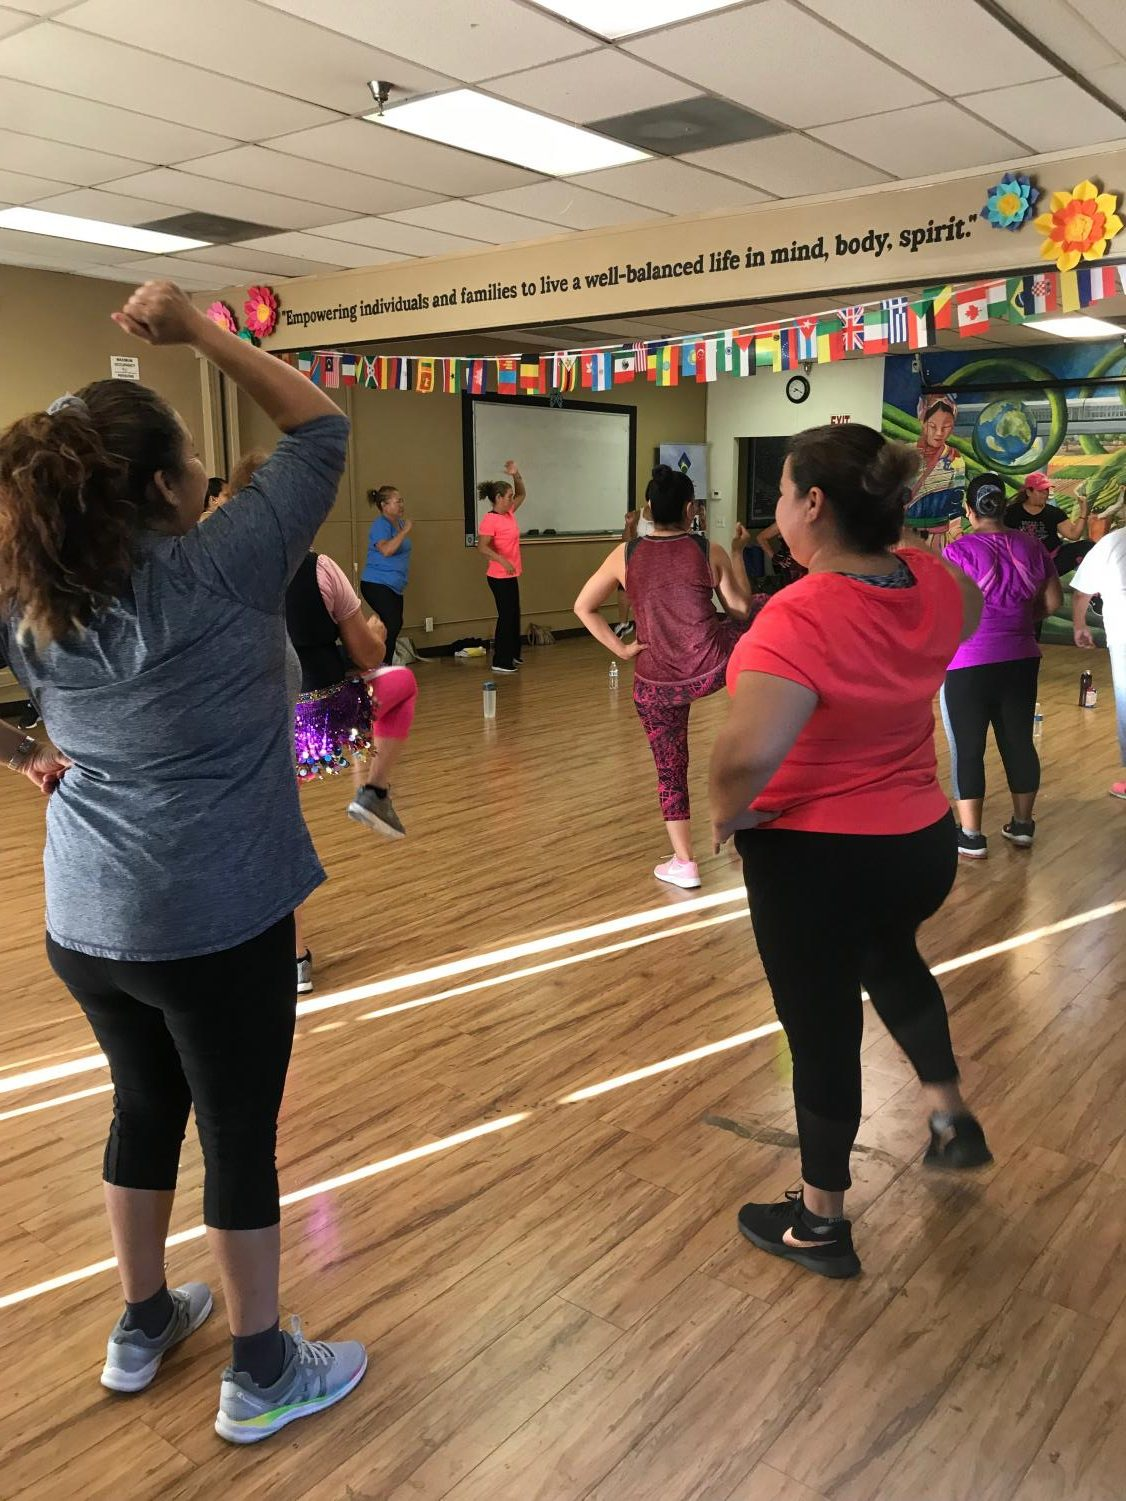 Participants at a workout class at the Holistic Cultural and Educational Wellness Center in Fresno,CA on Tuesday, Sept. 25, 2018.